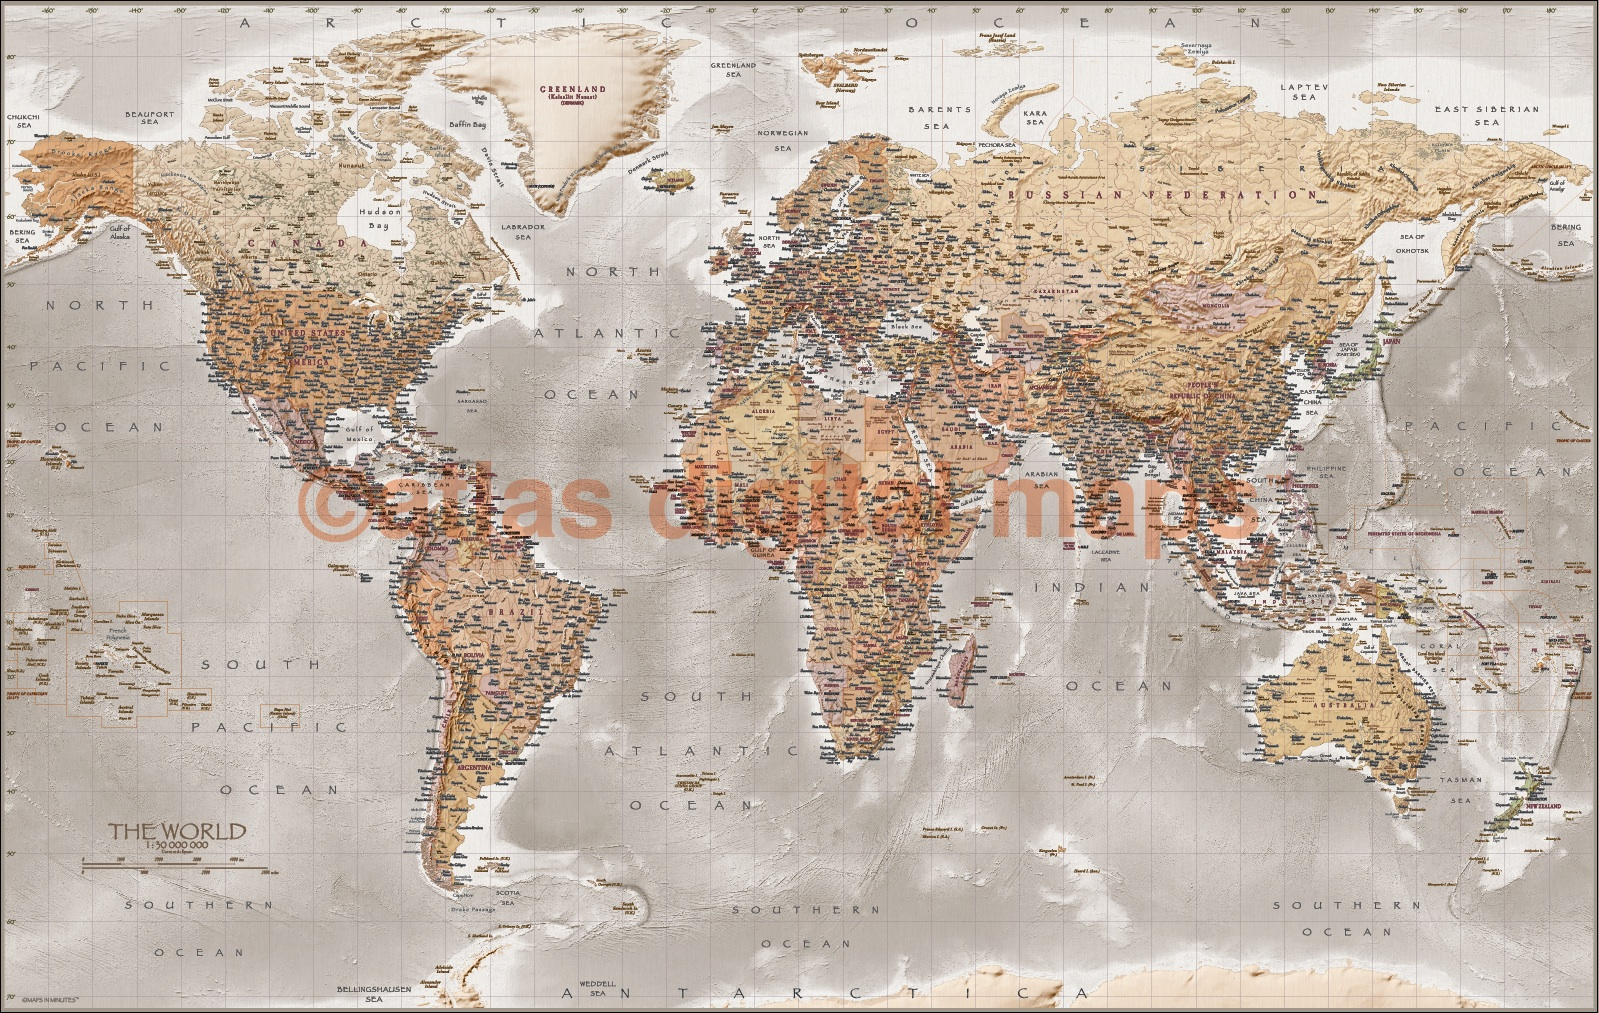 World wall map canvas 60 x 38 framed canvas antique style stone world map size 60w x 38d gumiabroncs Choice Image